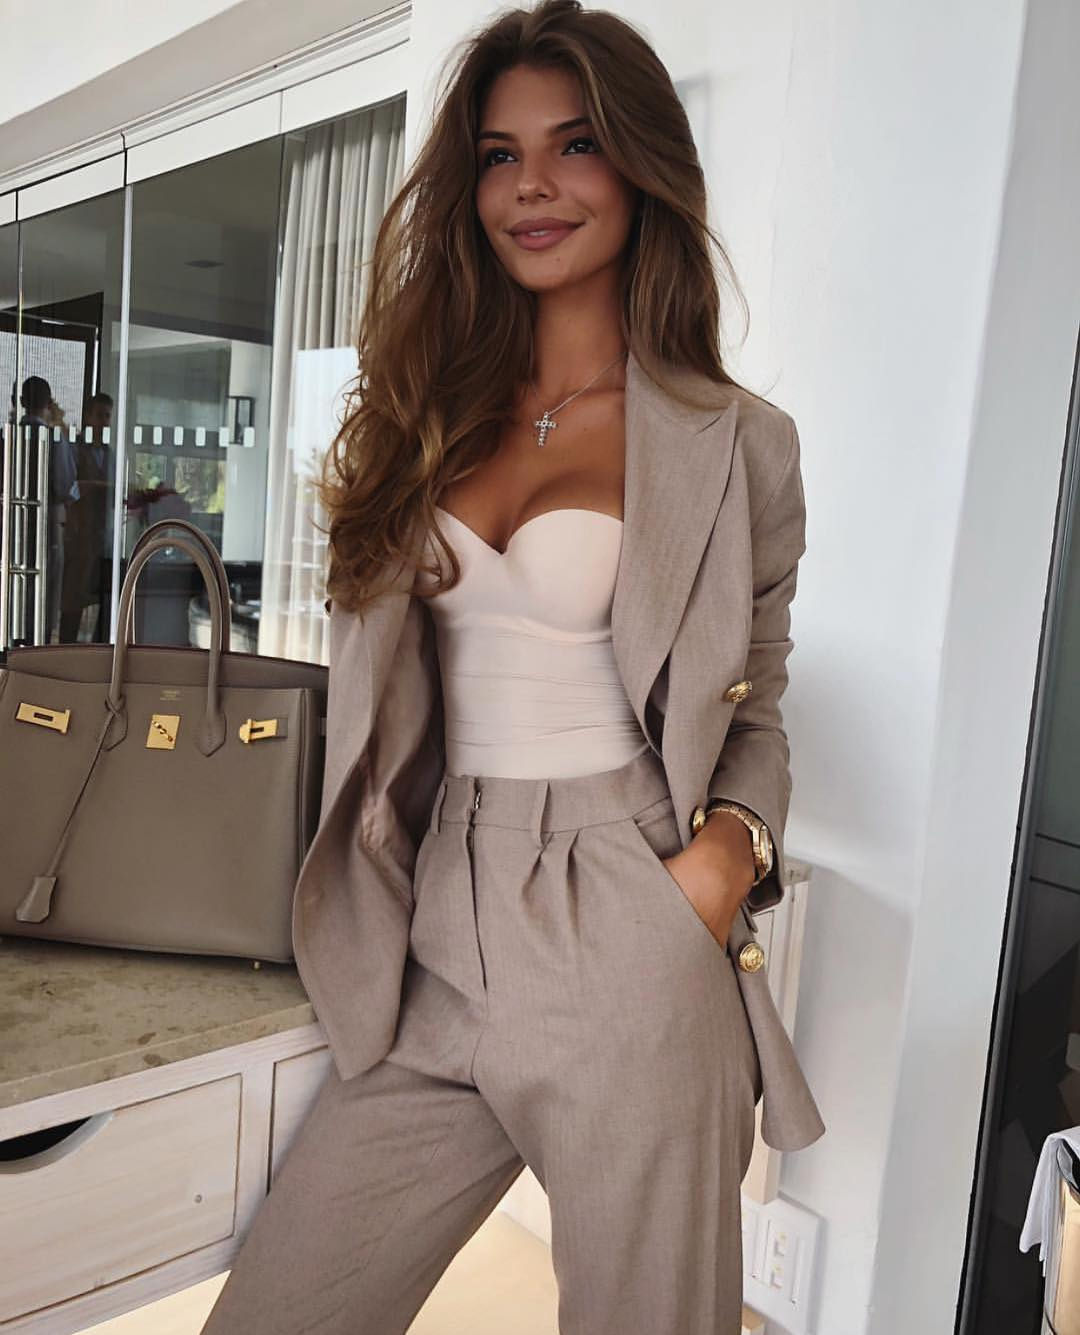 Cream Grey Pantsuit And White Strapless Bodysuit For Fall Office Hours 2020